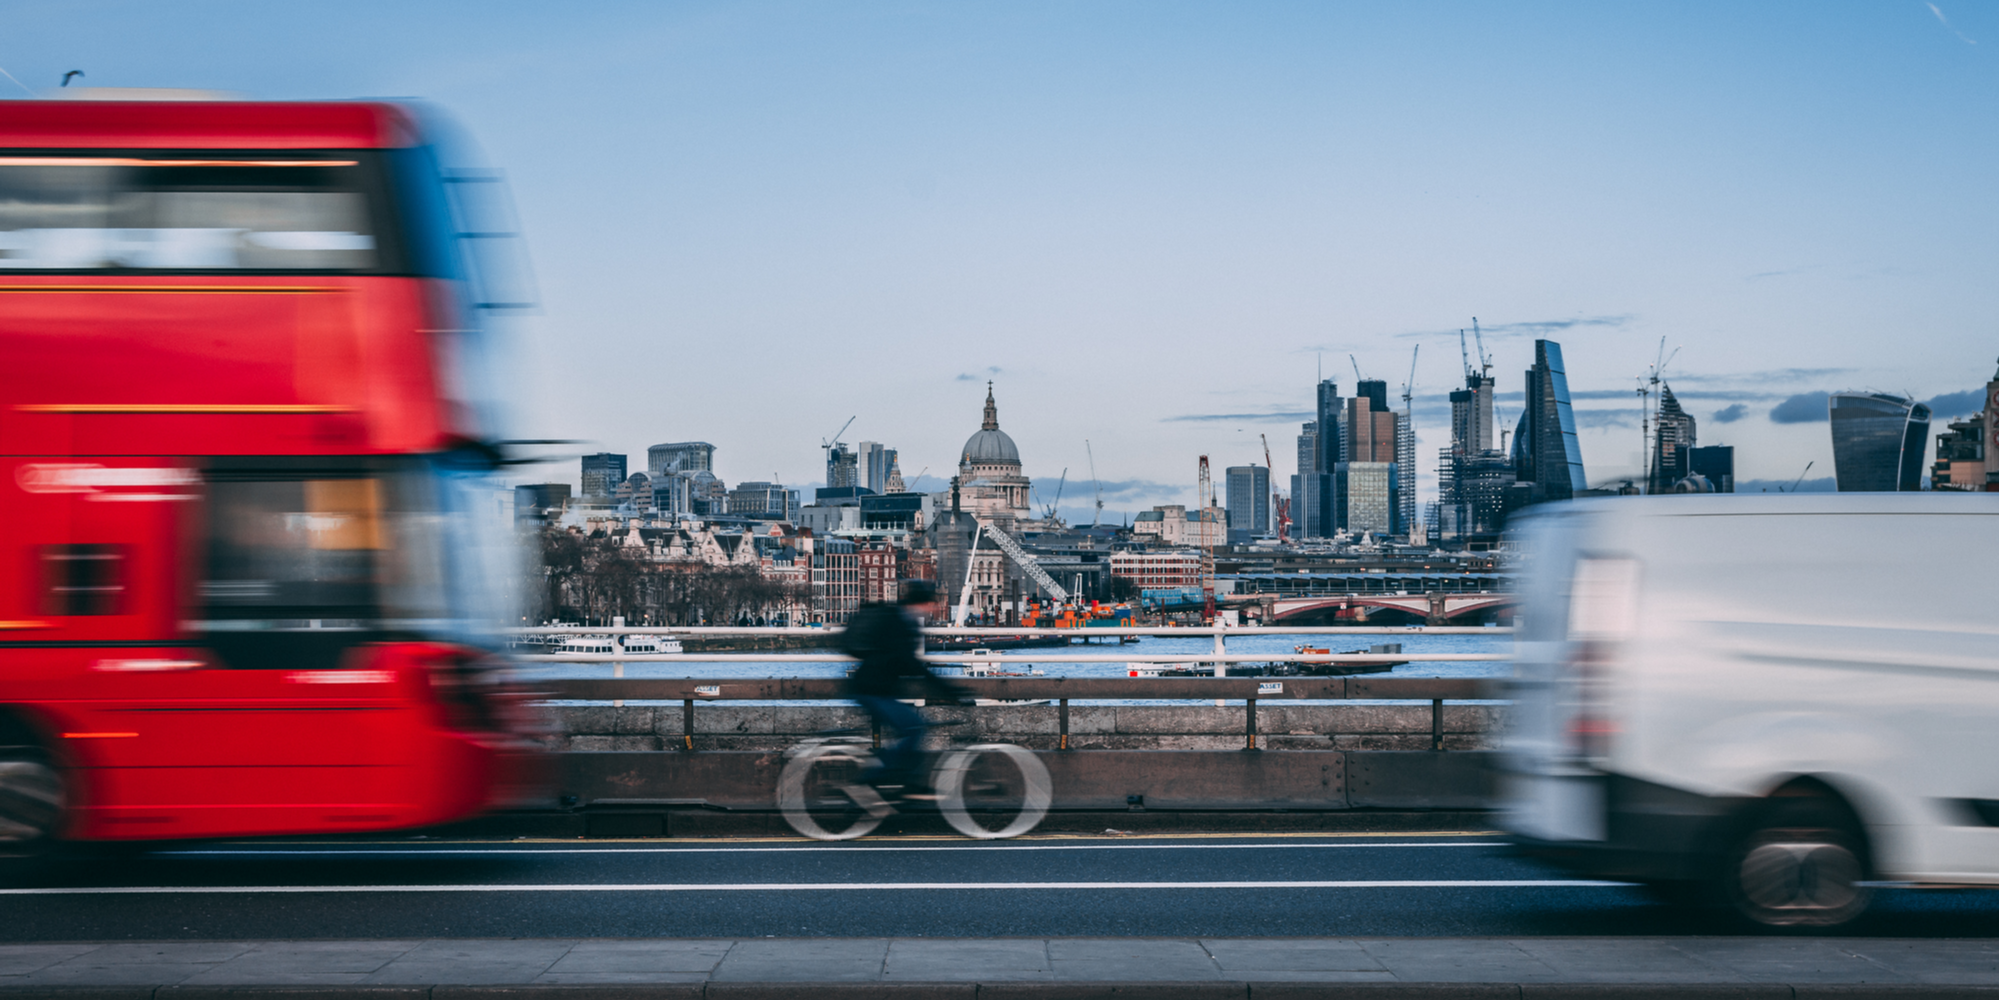 London FreightLab: meet our mobility innovators